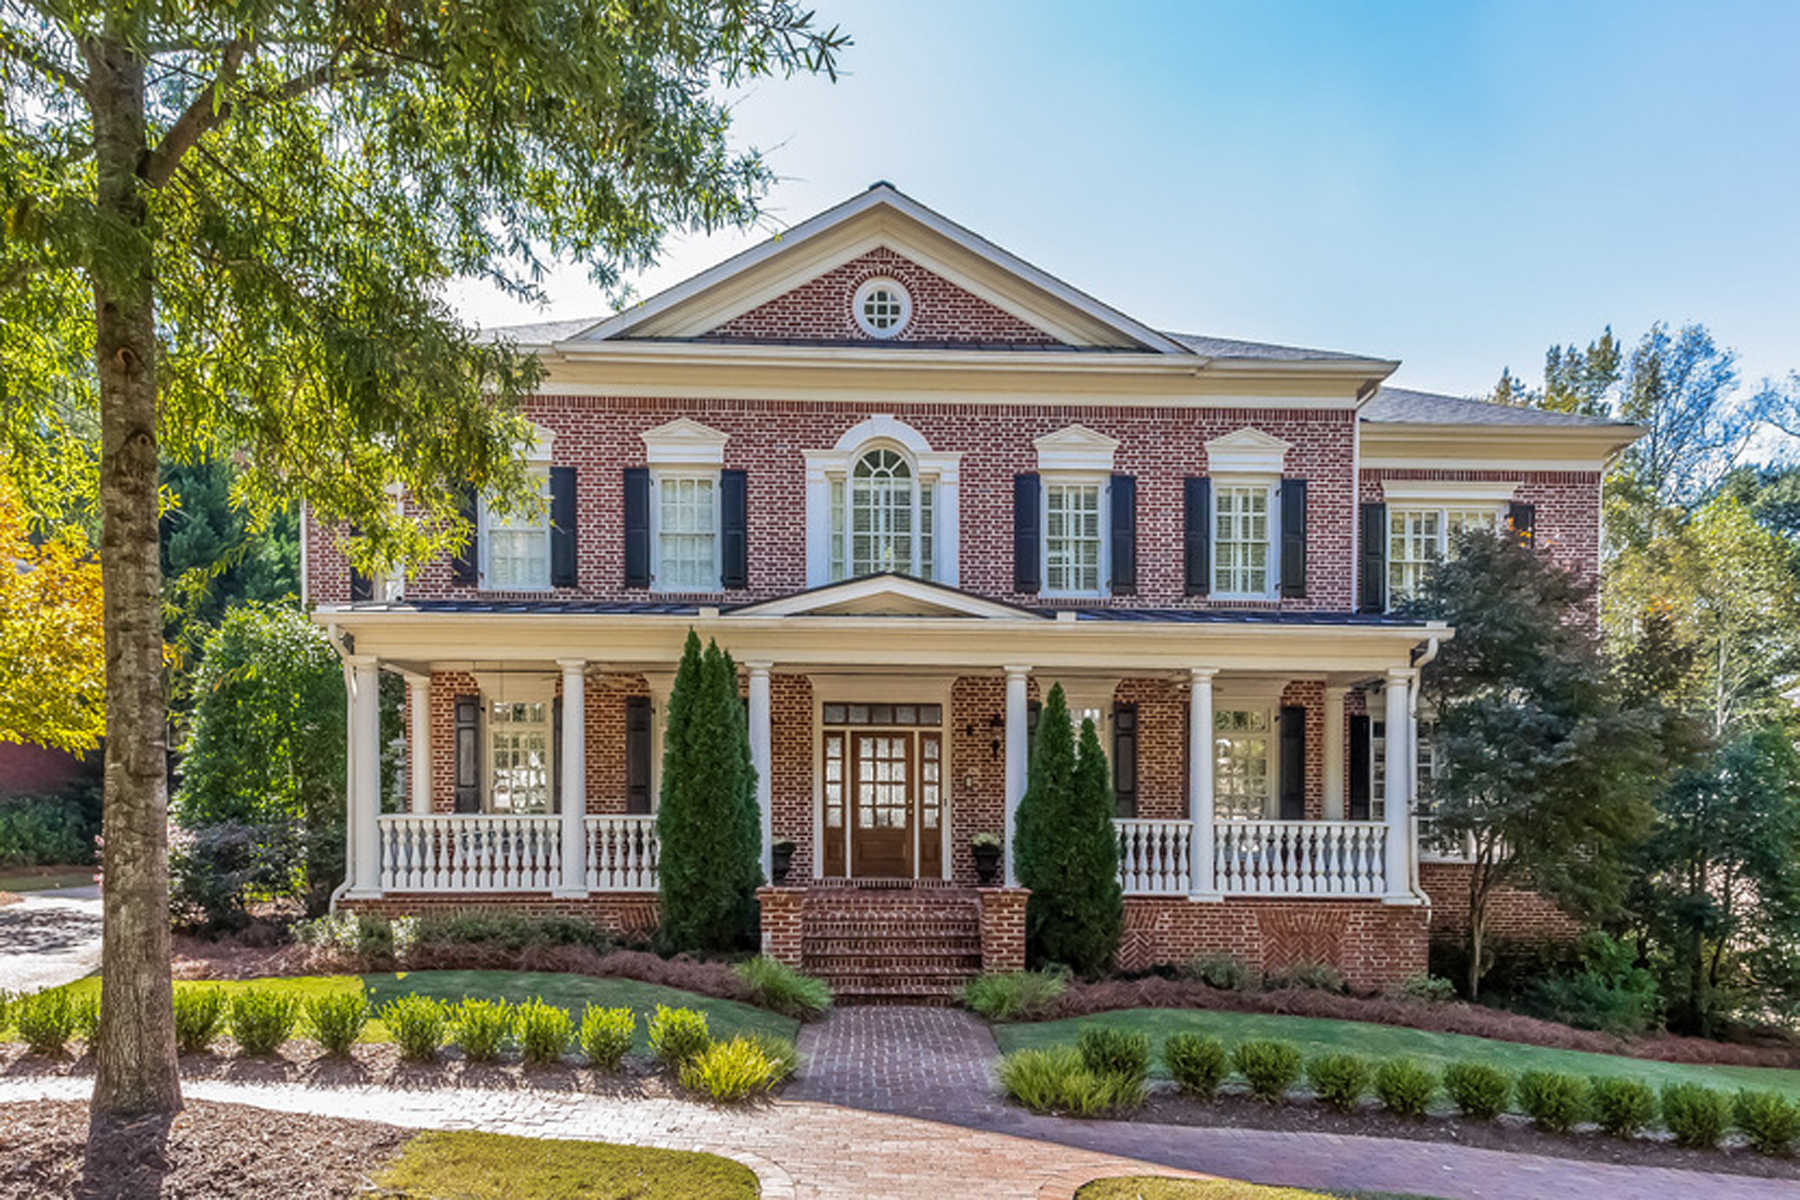 Casa Unifamiliar por un Venta en Small Town Southern Living In The Heart Of The City 3142 E Addison Drive Alpharetta, Georgia, 30022 Estados Unidos